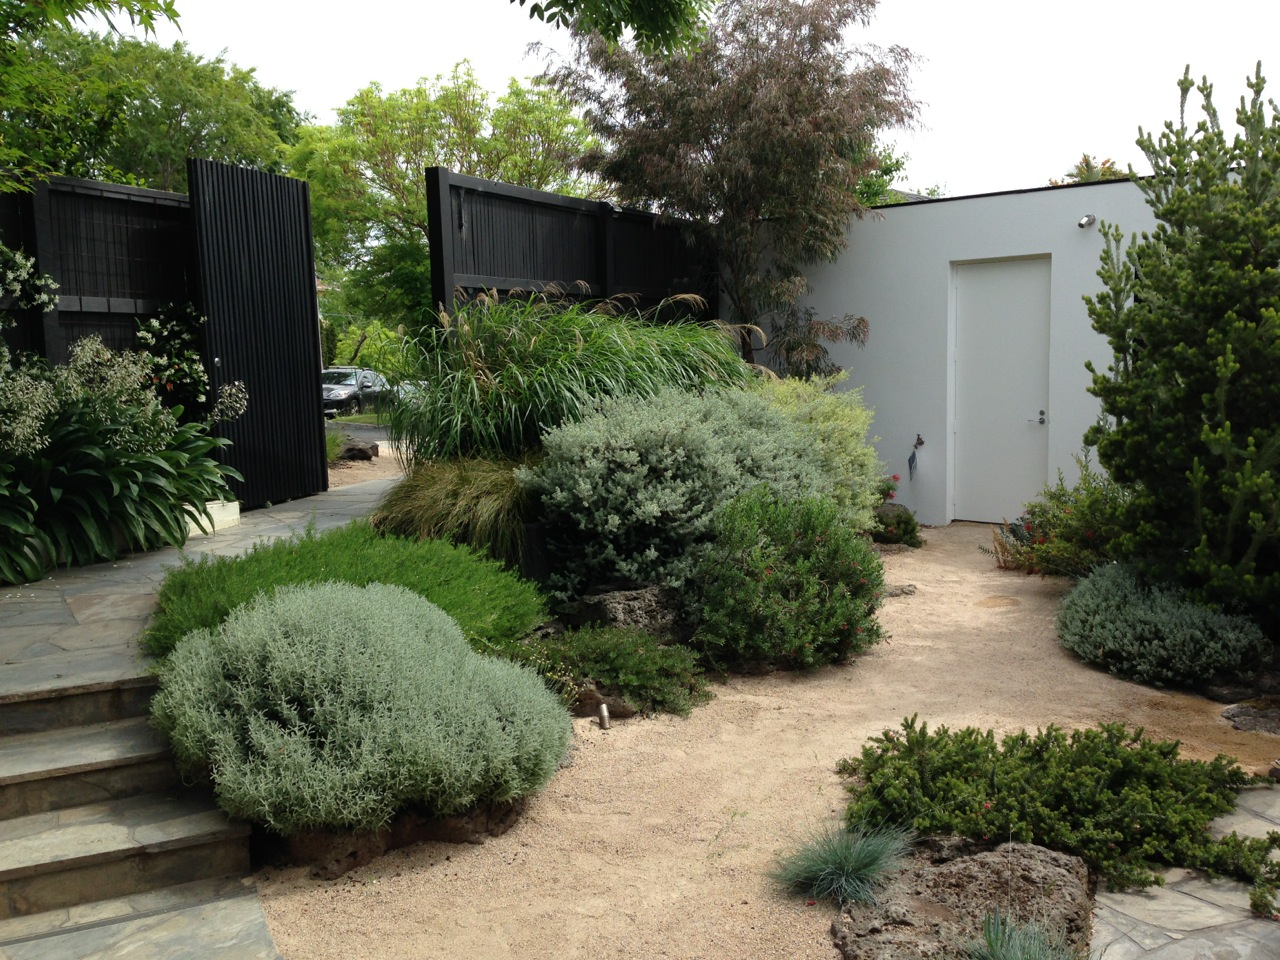 The best garden designer in australia janna schreier for Front garden designs australia